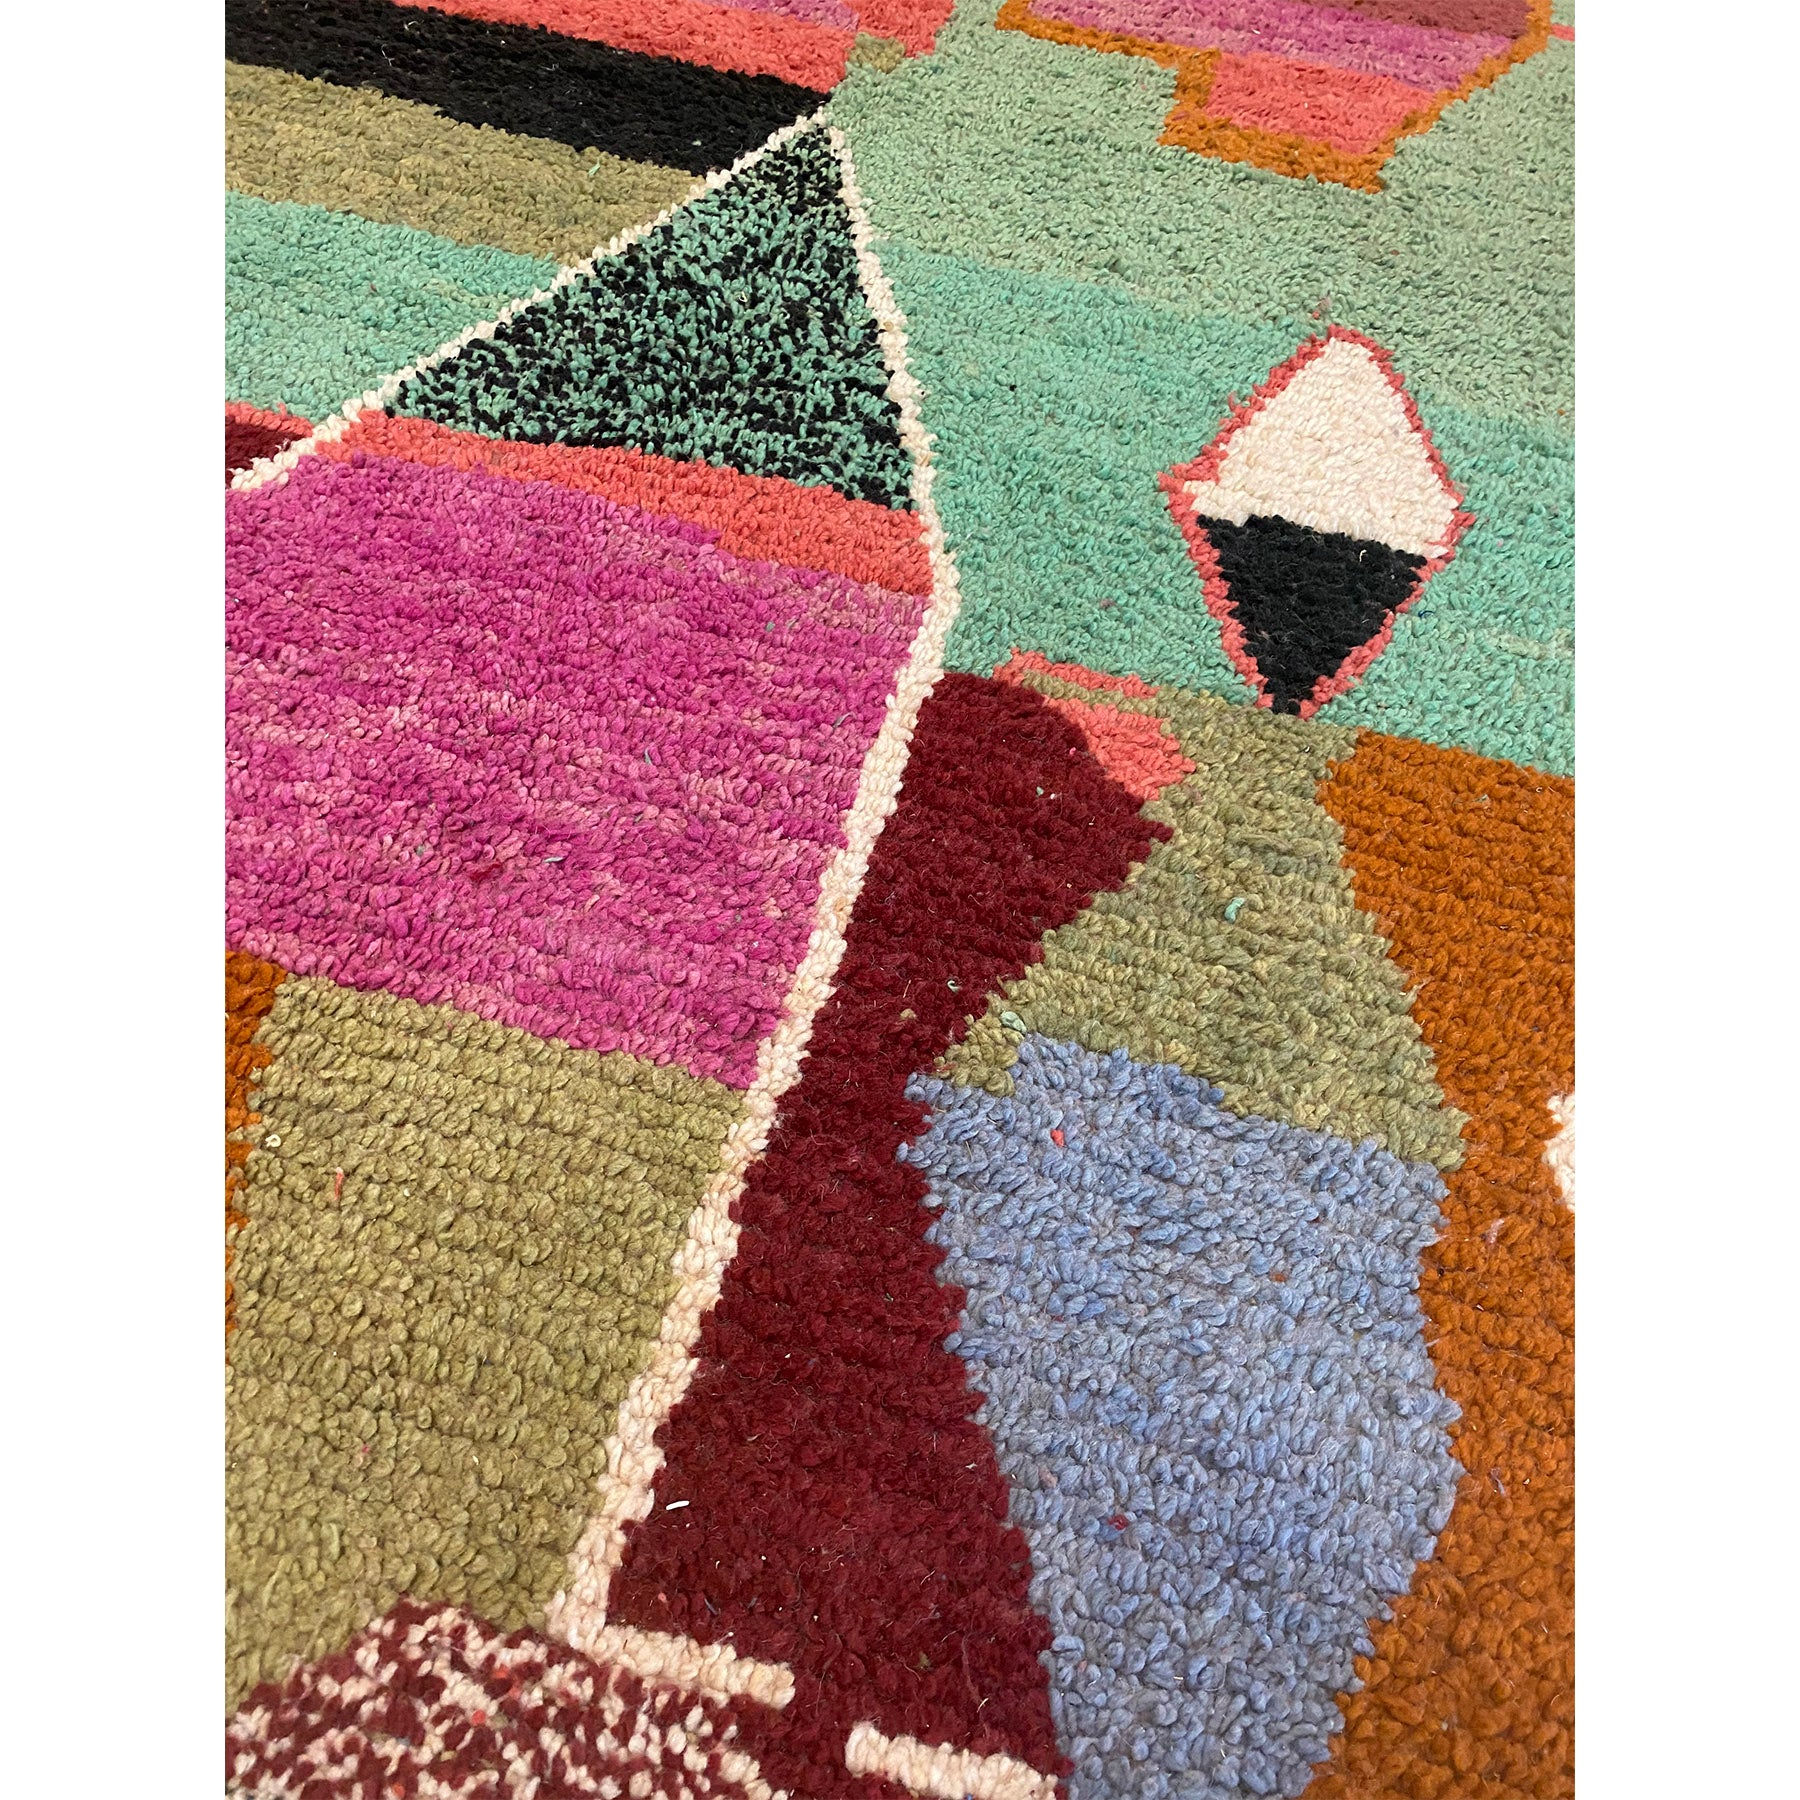 Art deco Boujaad style Moroccan berber carpet with abstract motifs - Kantara | Moroccan Rugs